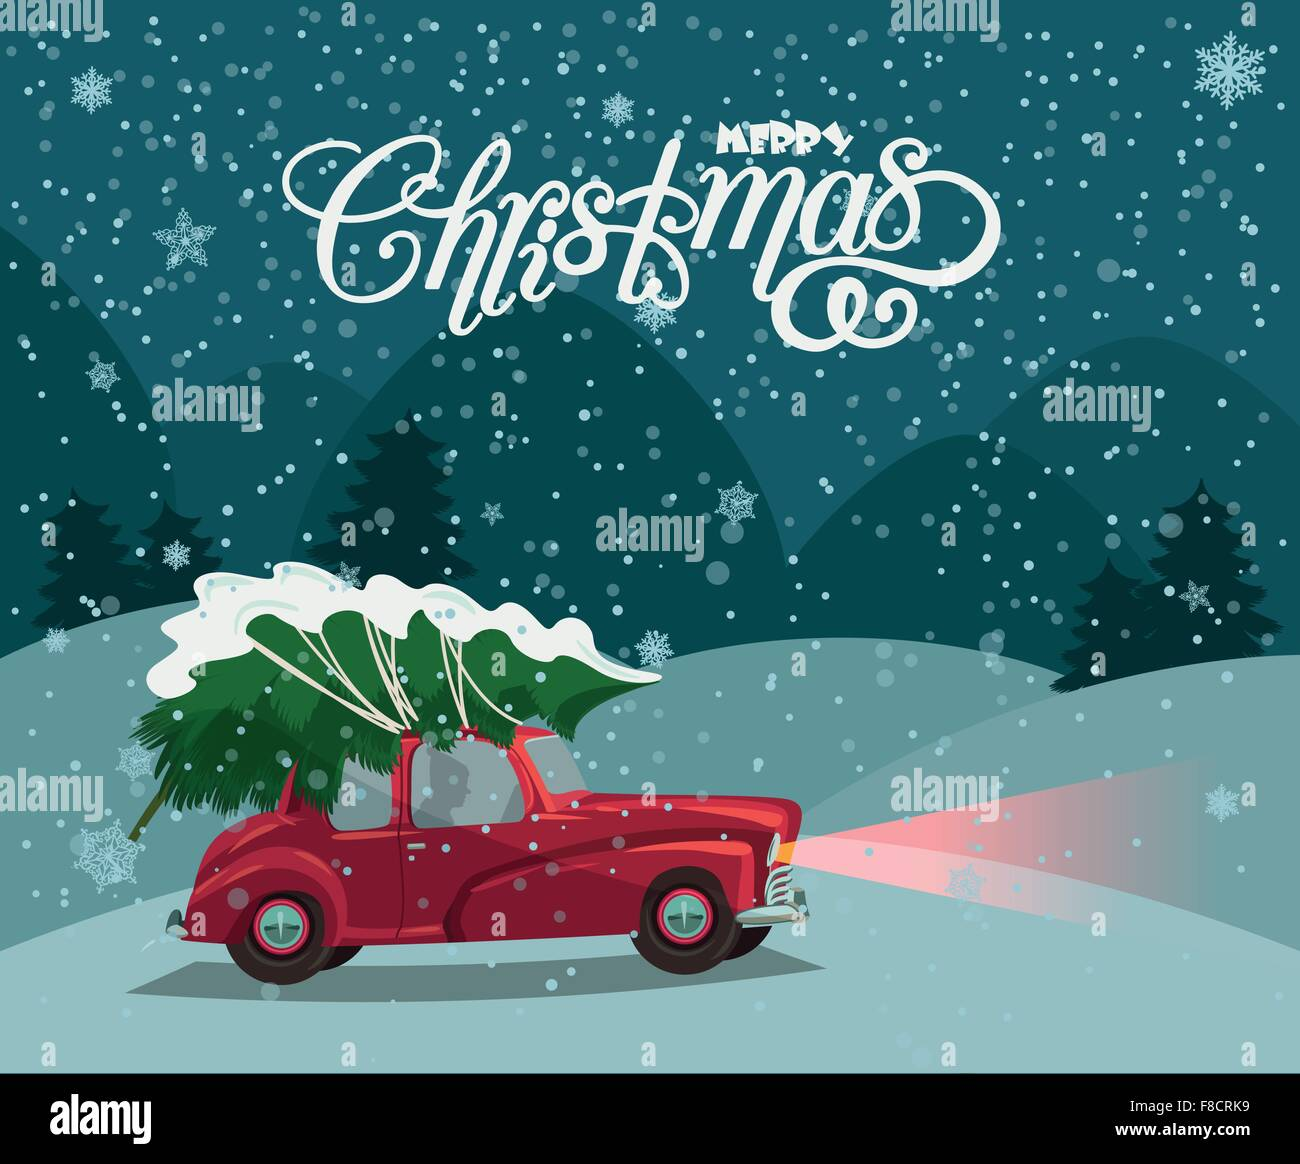 Merry Christmas Illustration Landscape Card Design Of Retro Red Car With Tree On The Top